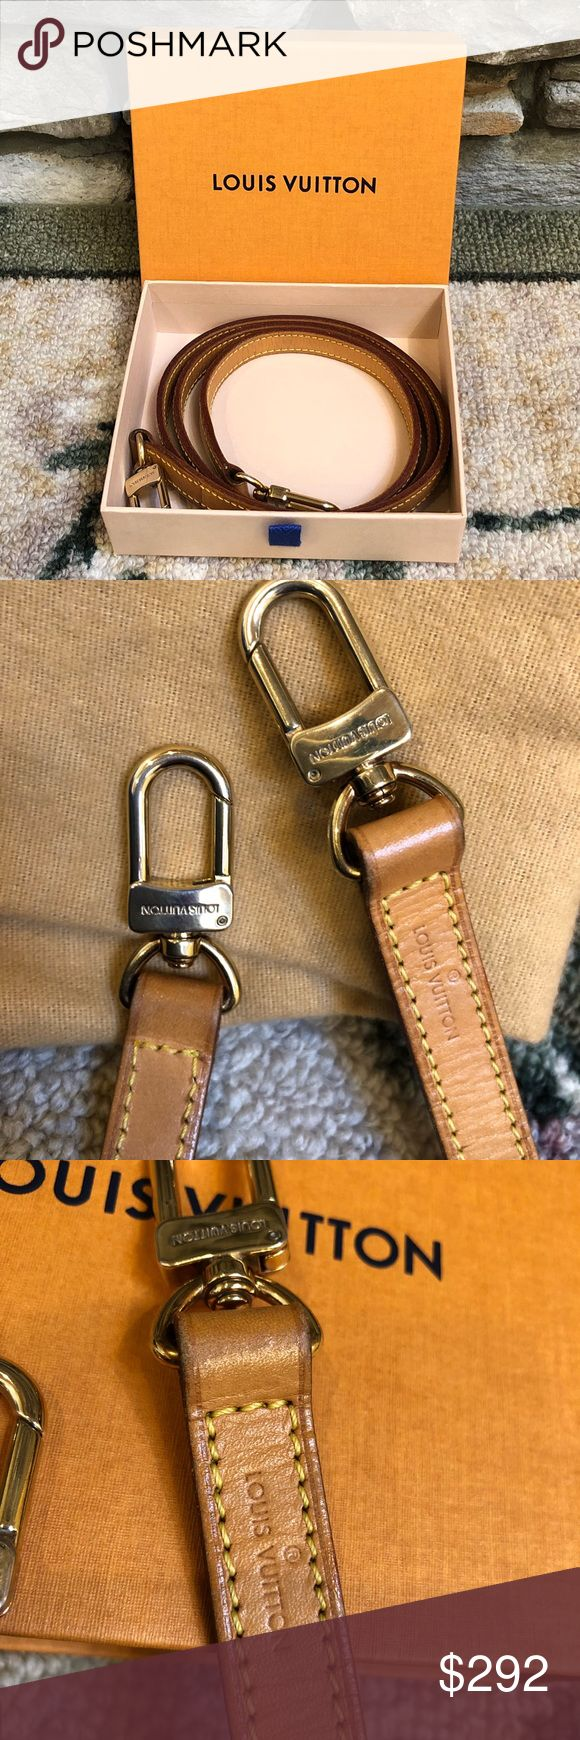 Authentic Louis Vuitton Bag Strap 100% Authentic Louis Vuitton Bag Strap  Preloved  Vachetta leather  43 inches long or 111 cm x 1.5 cm dia. Very Good Condition  No cracks  No Damage  No watermark Ready to use Gold Hardware  With Box Louis Vuitton Bags